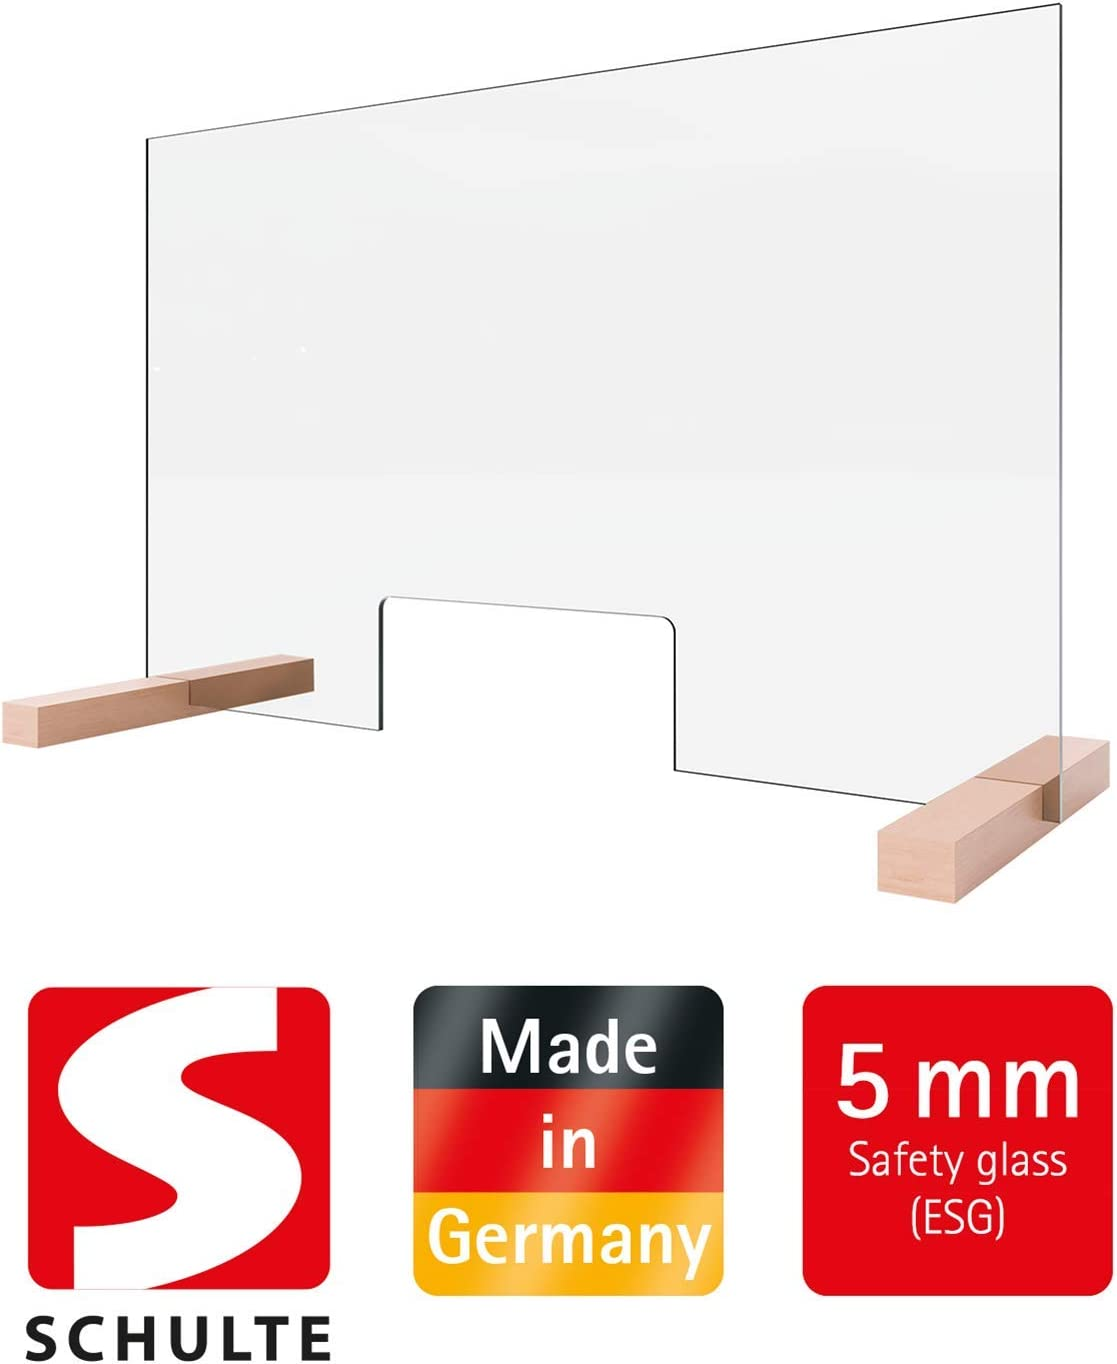 Counter top with Hatch Transparent Made in Germany by Schulte ESG 475750 Immediately Available: Protective Screen and Sneeze Protection Made of 5 mm Safety Glass 75 x 48 cm